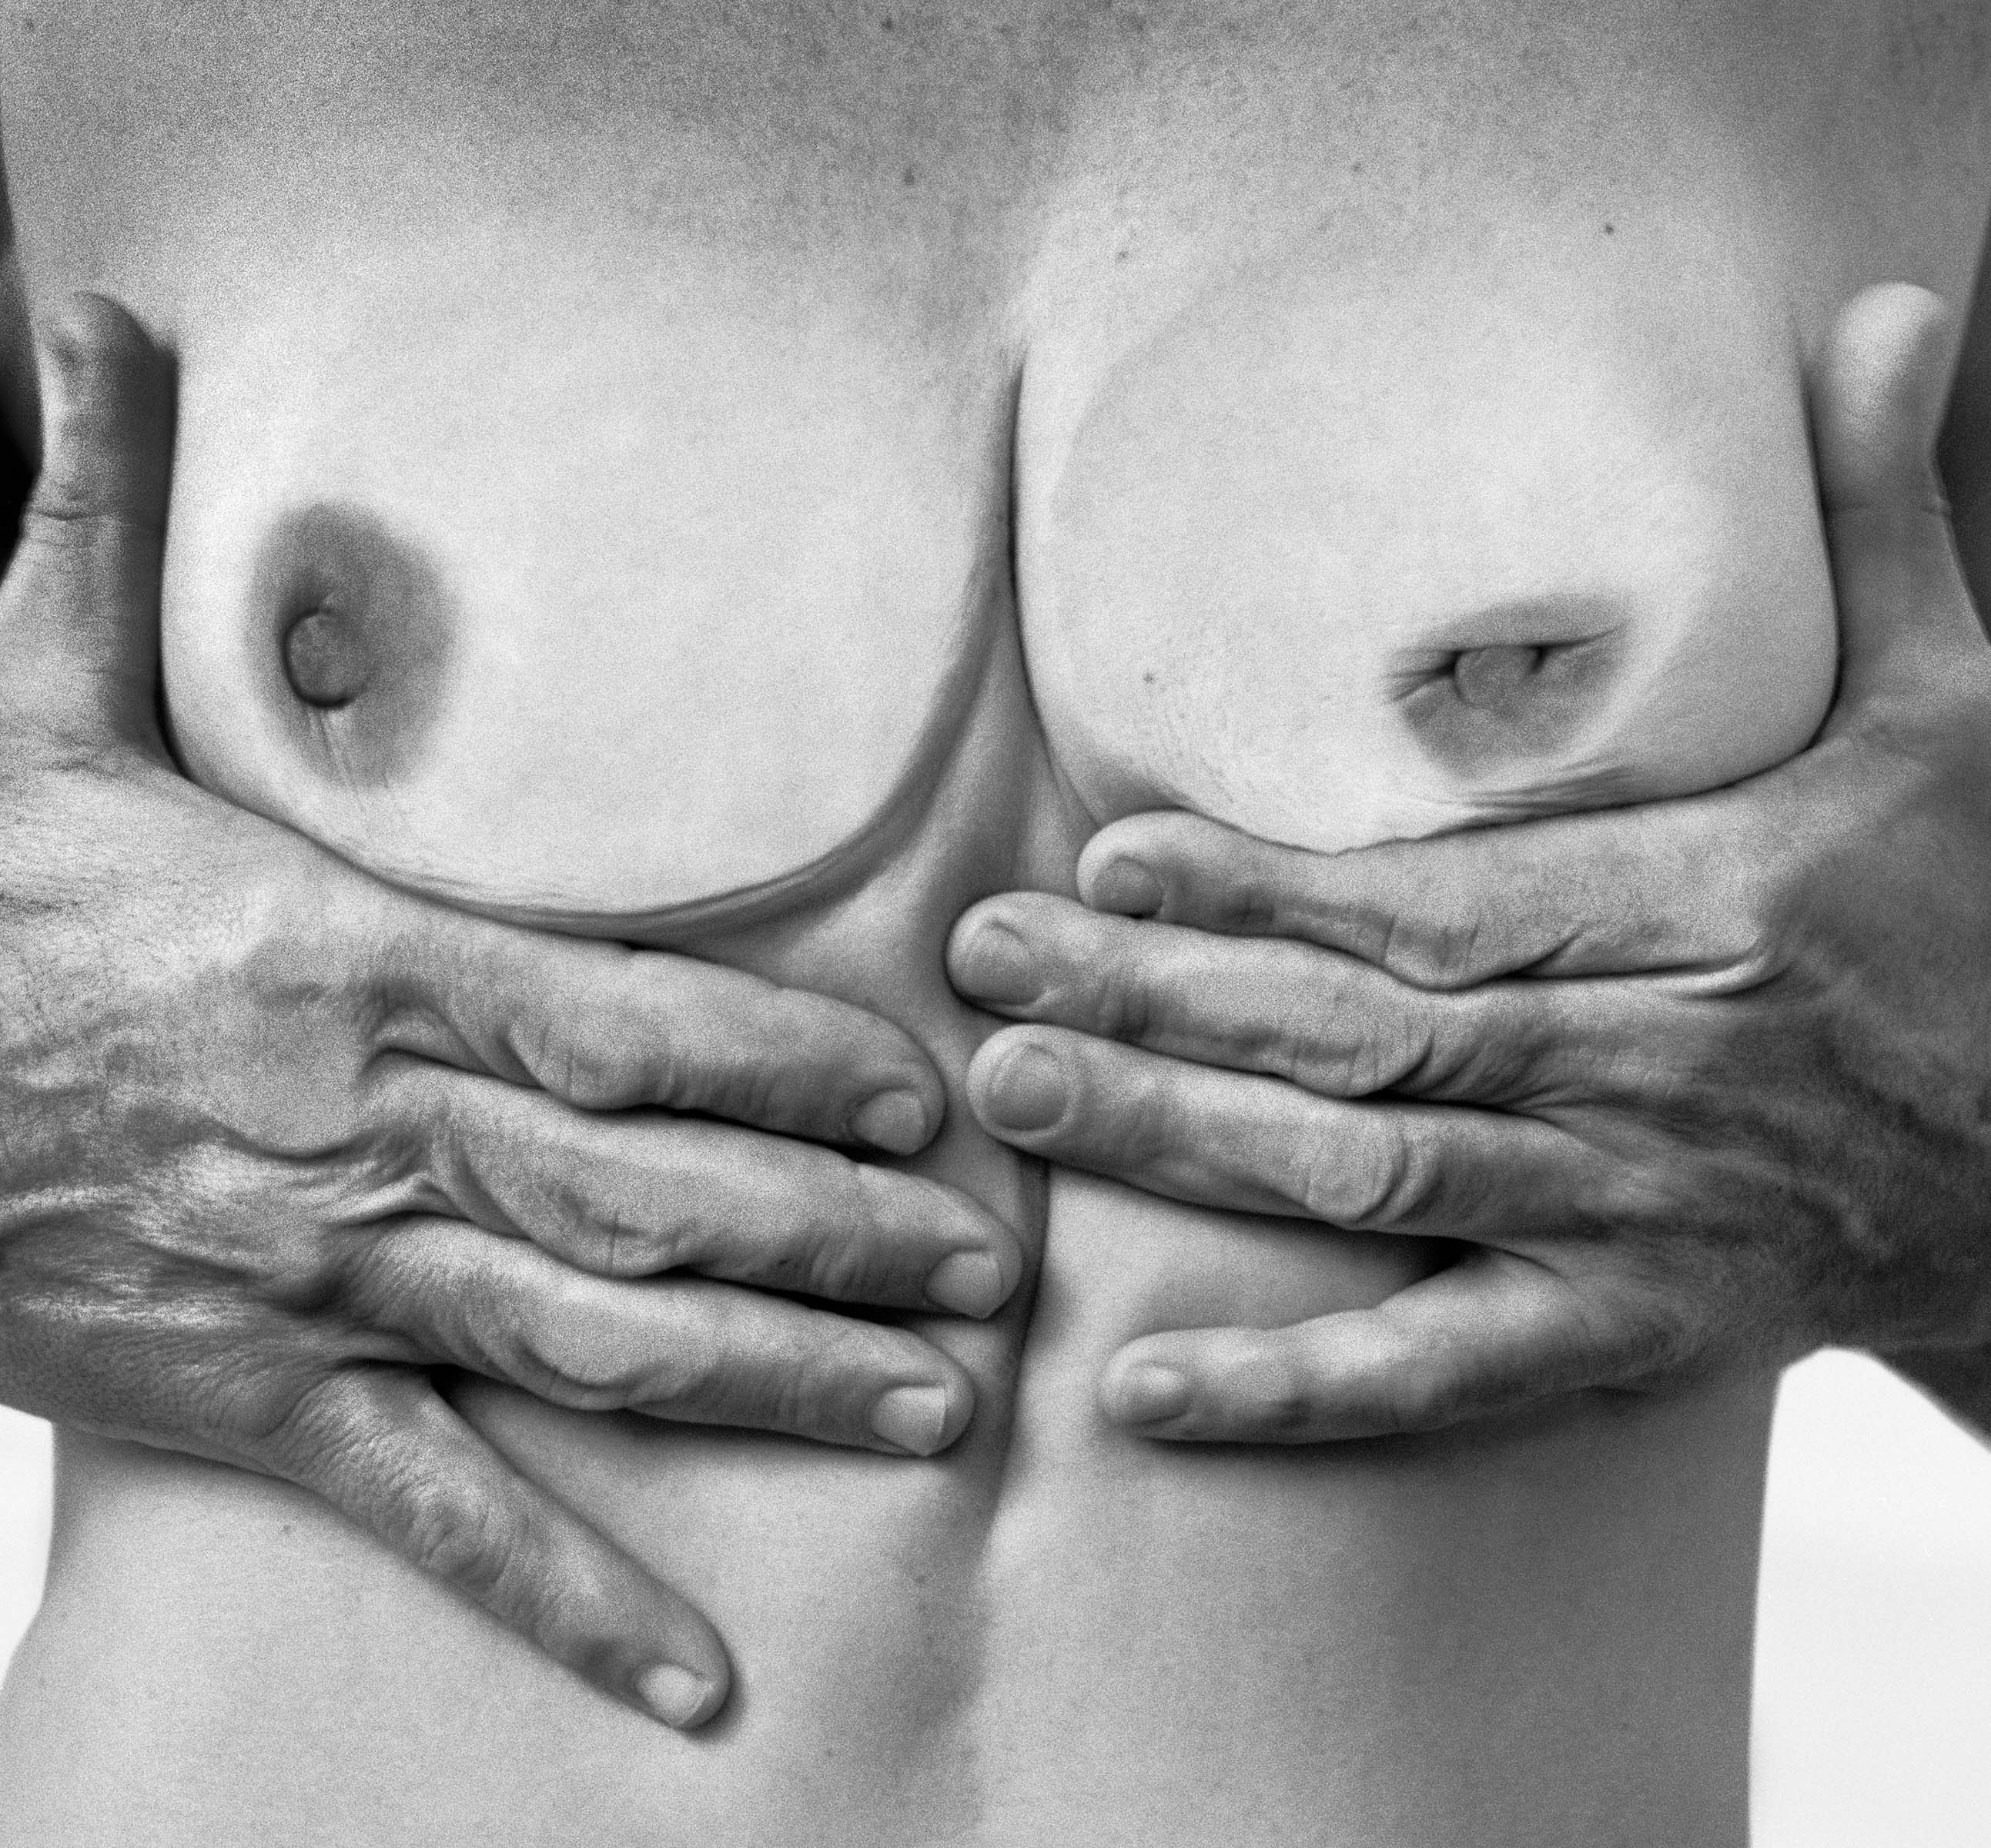 Two Hands, Two Breasts